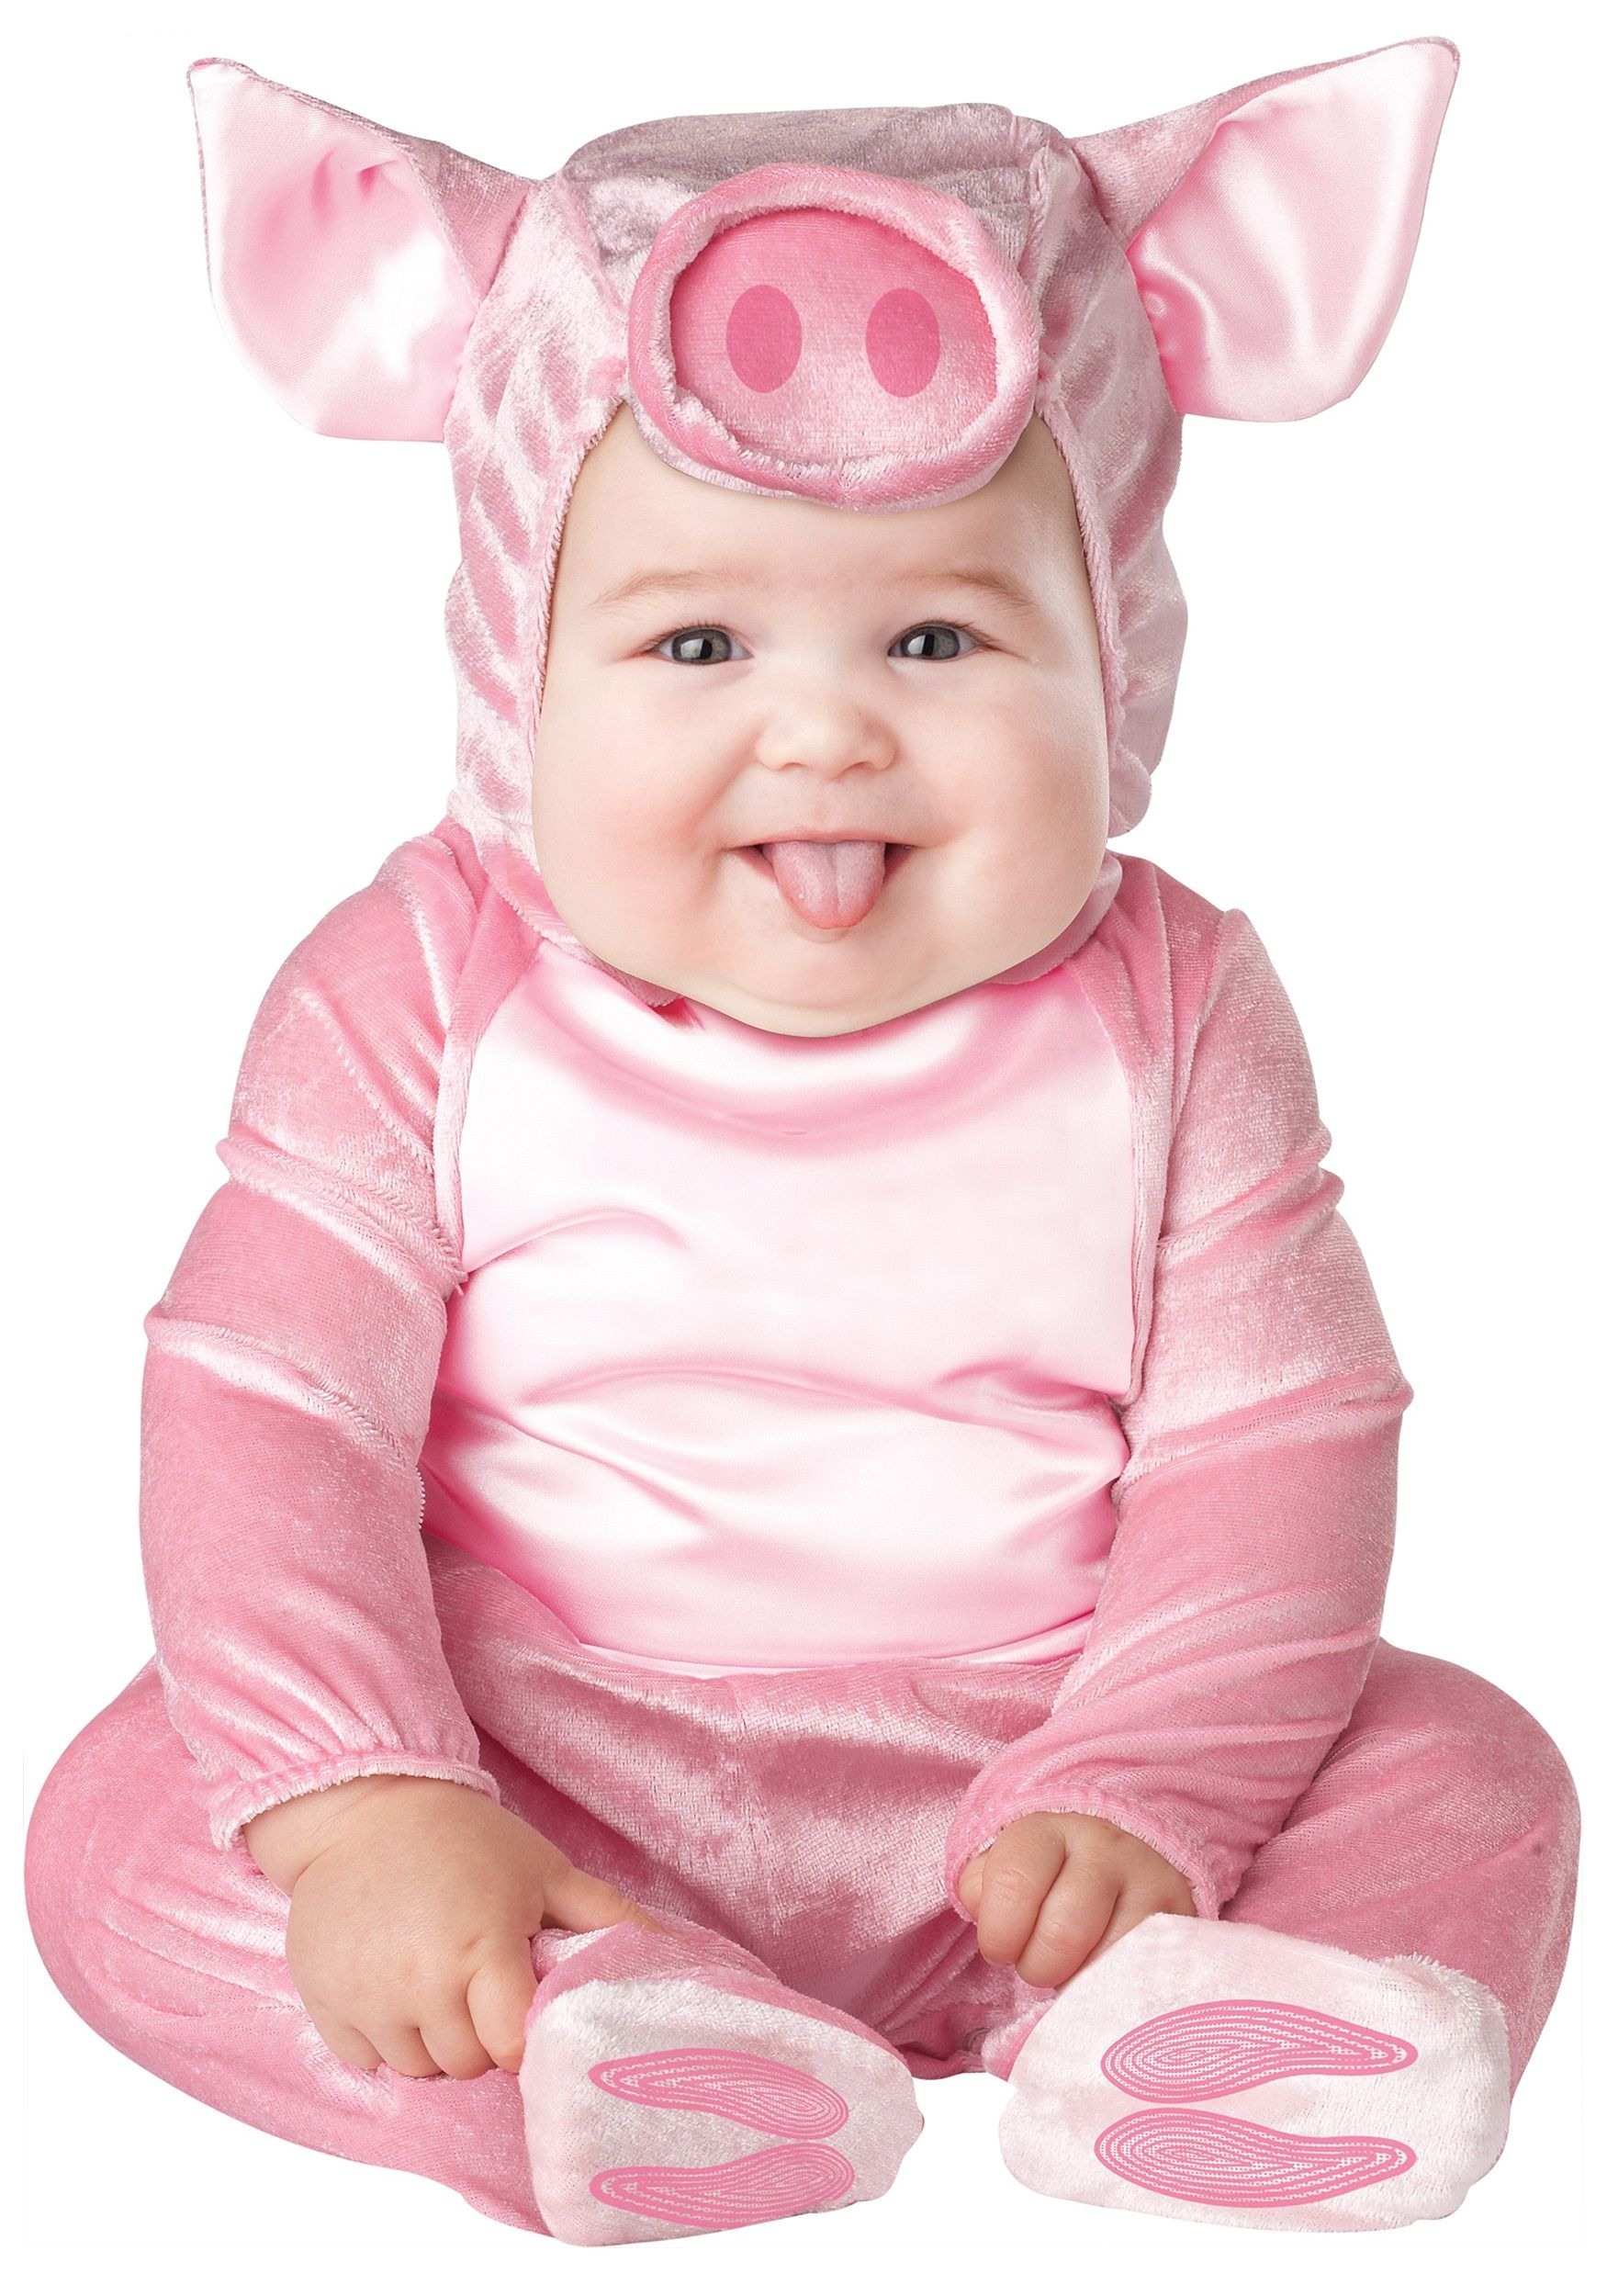 What are some cute Halloween costume ideas for newborn baby girls?